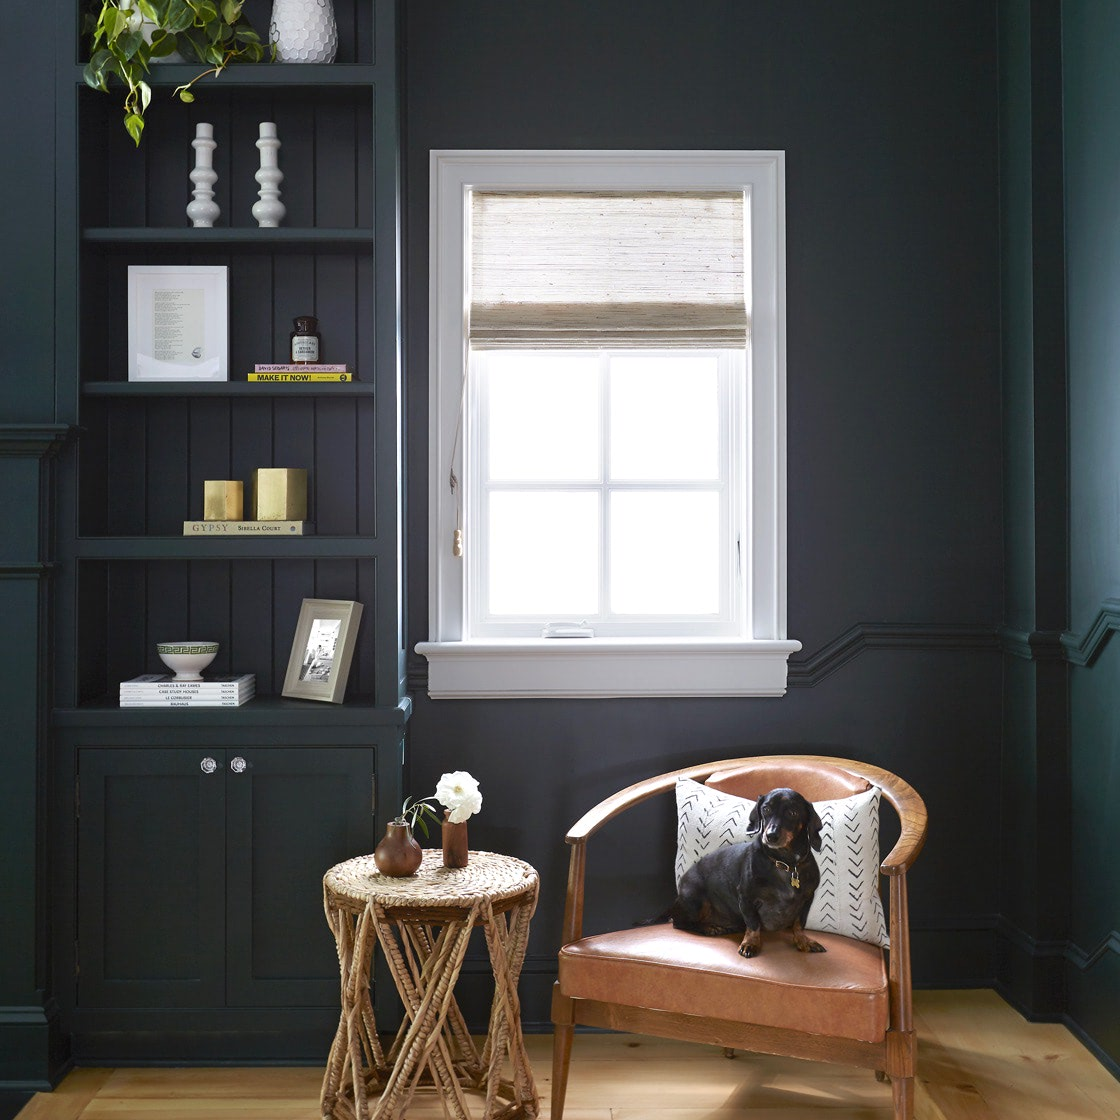 A dark shelf unit next to a window with roman shades | Everhem